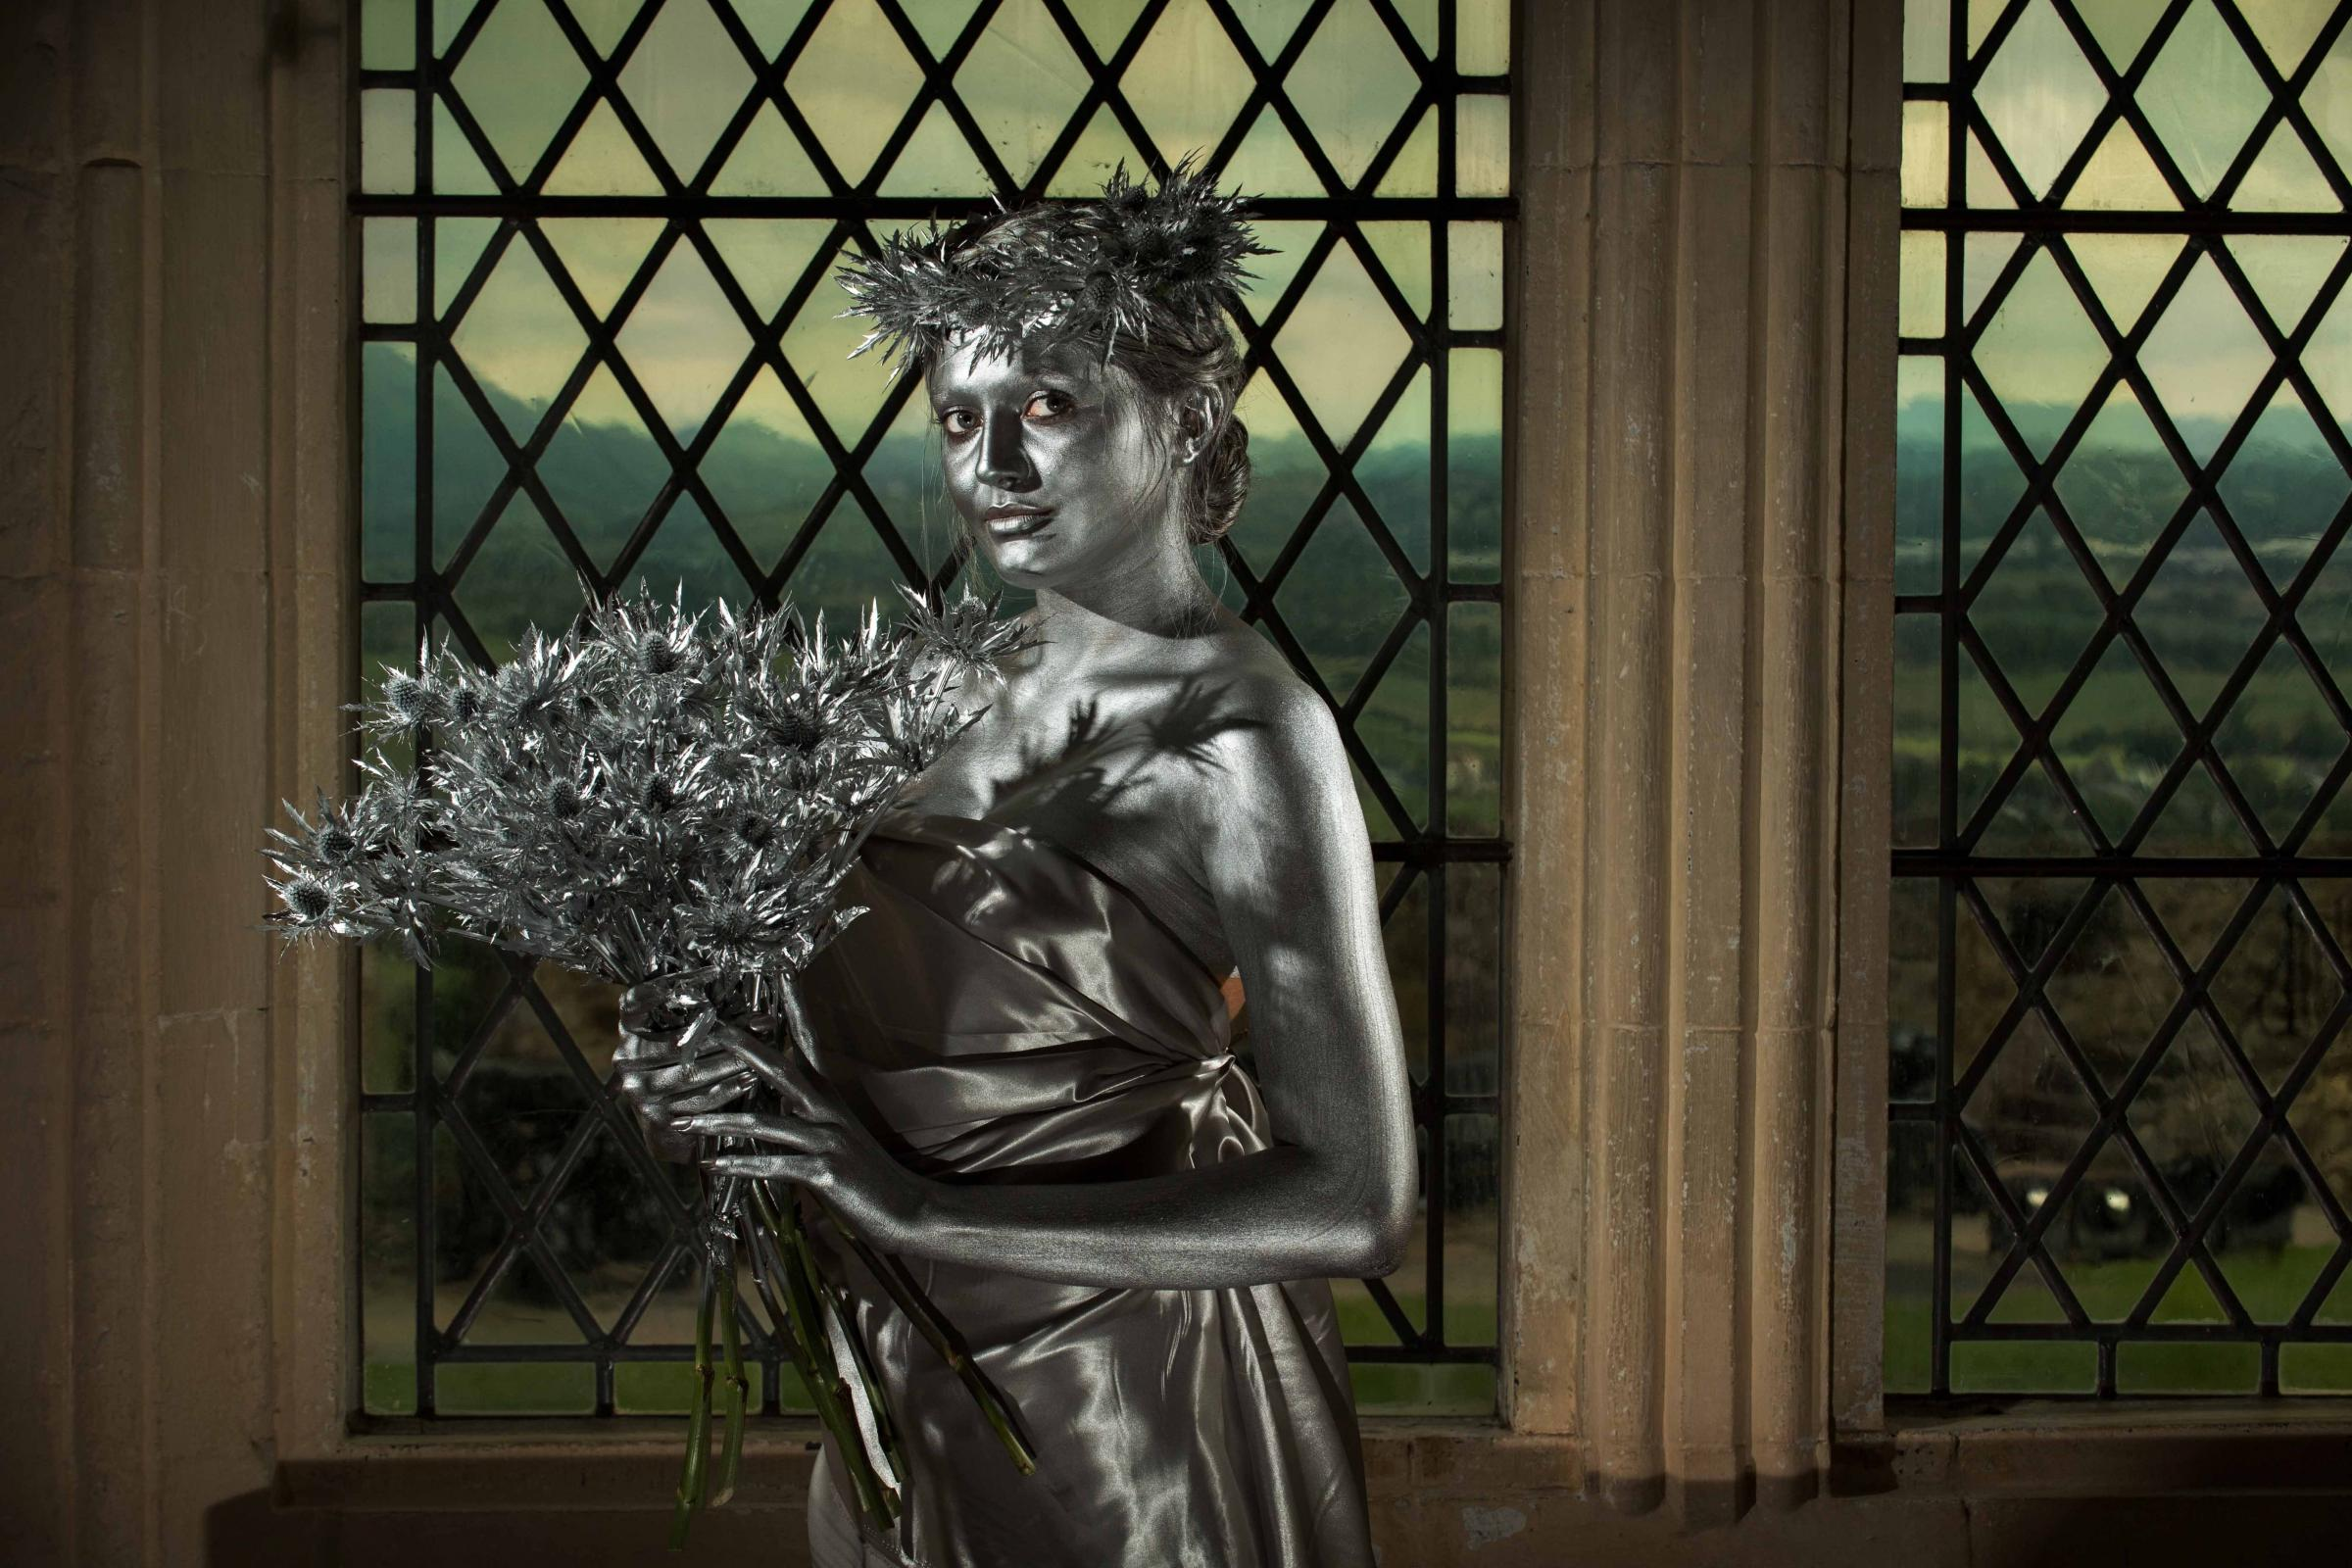 Picture by Gareth Easton. 07752 666 522. At Stirling Castle, 'silver thistles' model Robyn Flemming marks the 25th anniversary of Scotland's tourism Oscars, The Scottish Thistle Awards, and their new heritage experience category sponsored by Histori